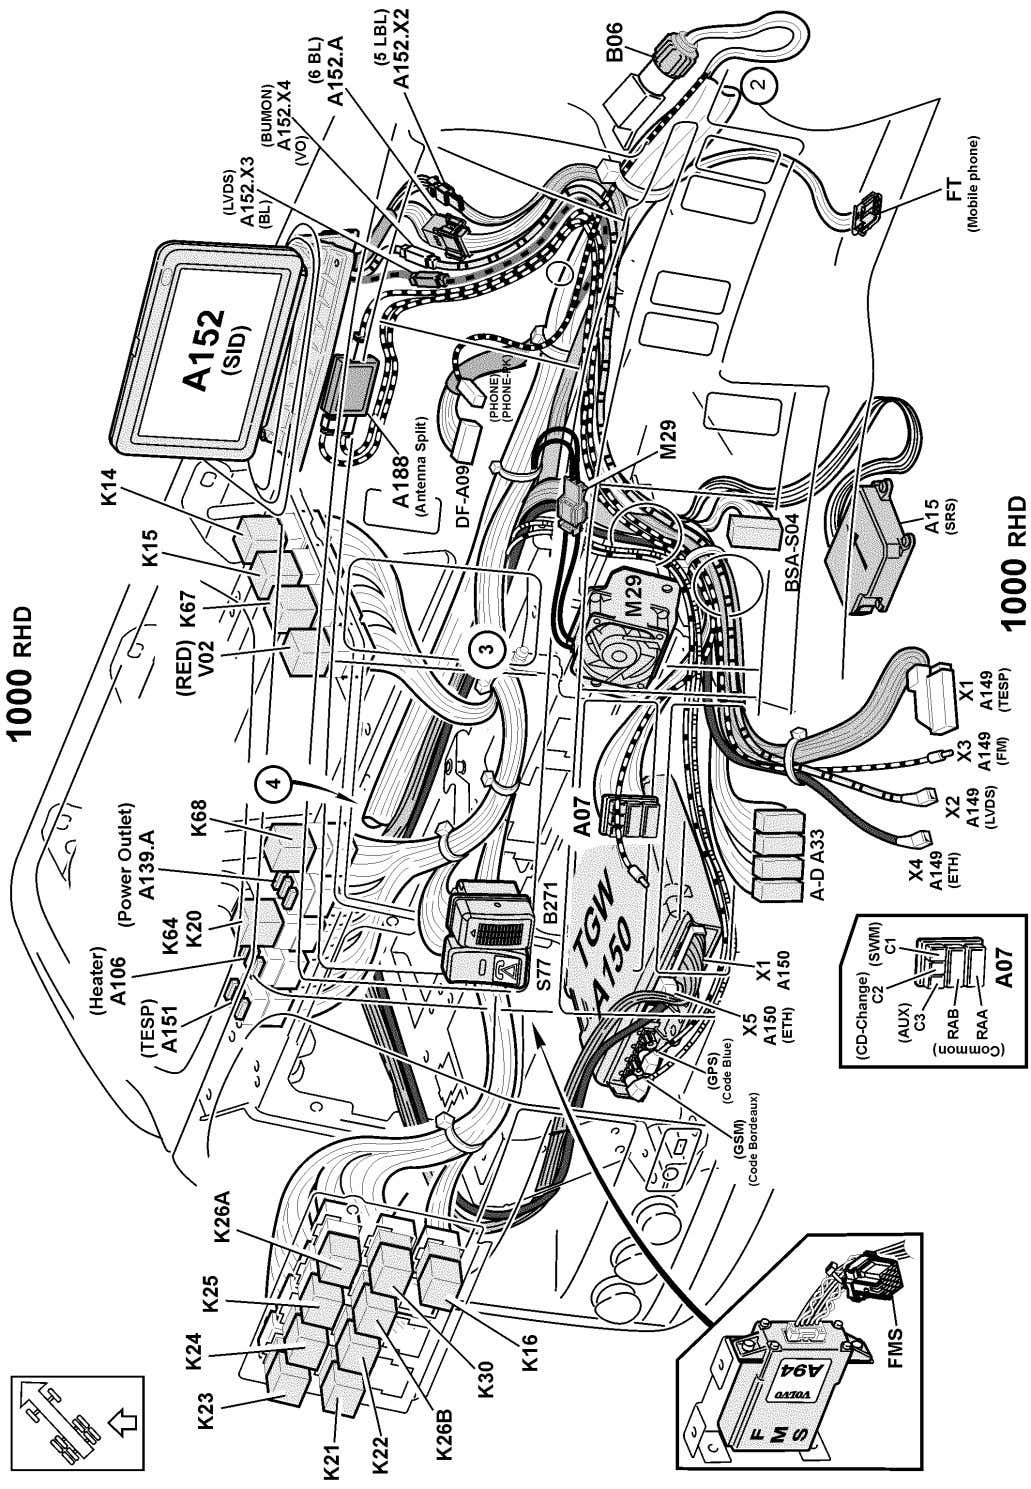 T3075459 Wiring diagram Page 139 (298)